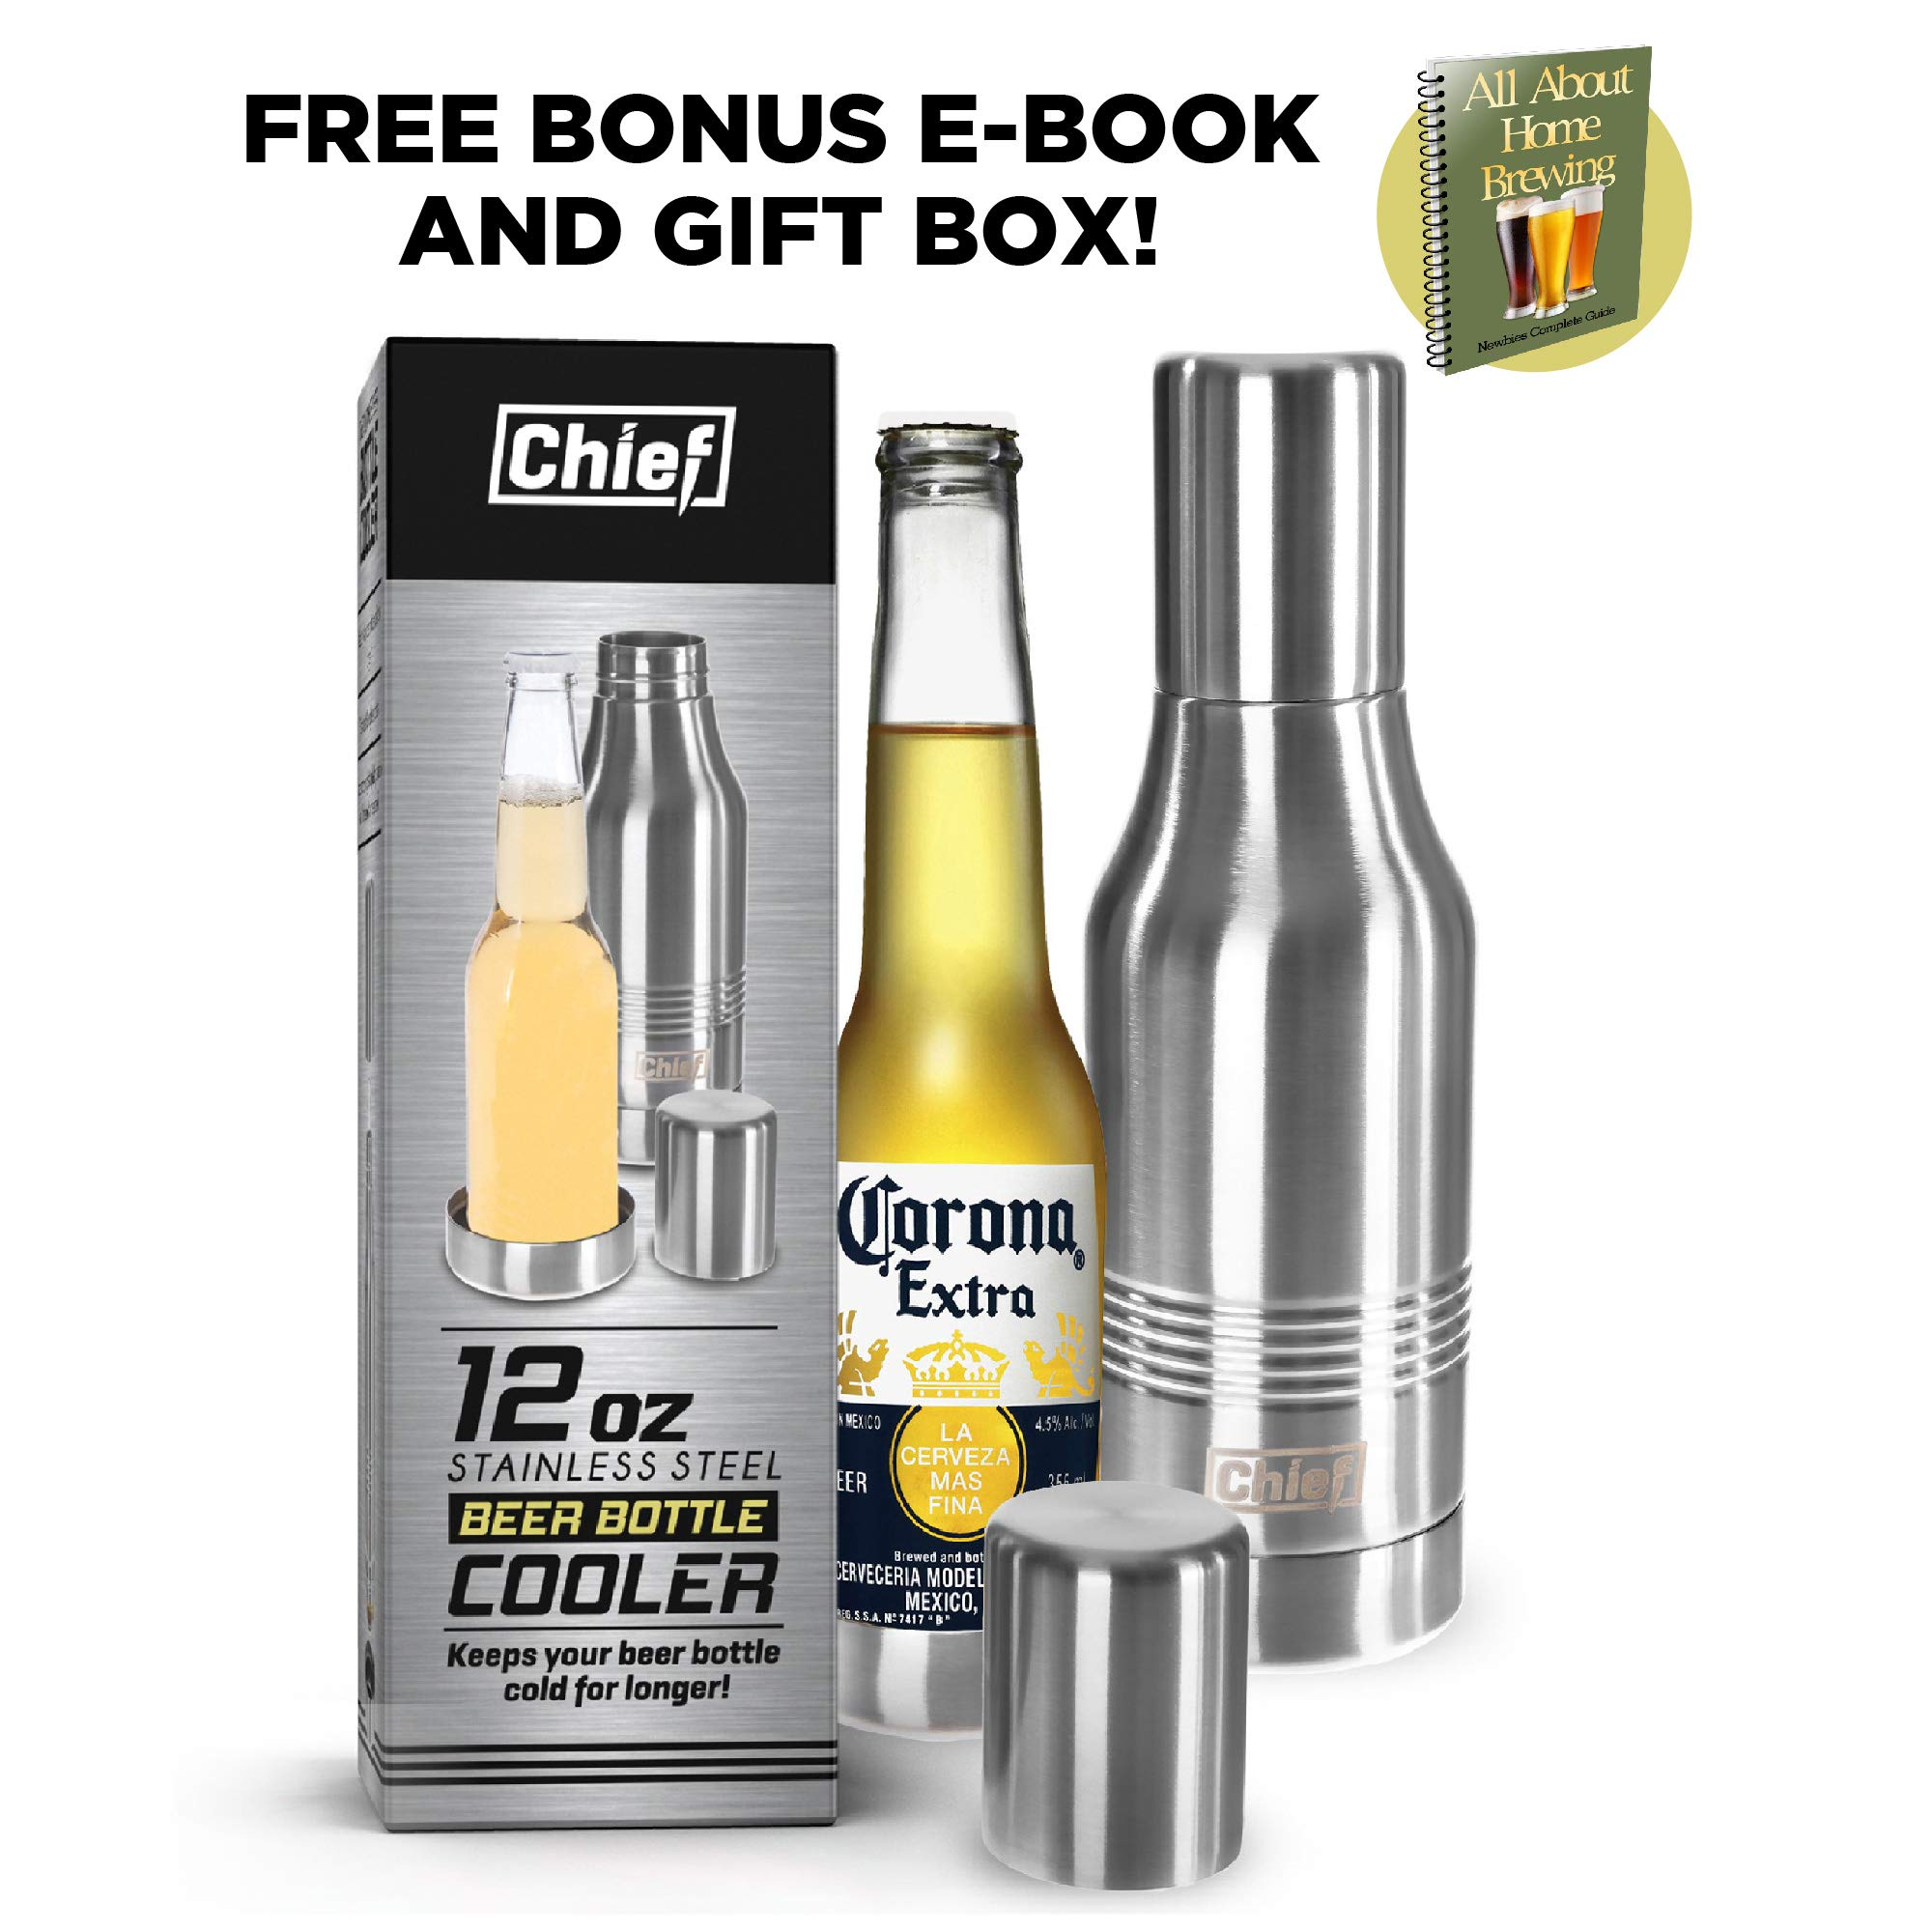 Beer Bottle Cooler- Double Wall Stainless Steel Beer Bottle Insulator. Great Gift ! BONUS e-Book and Gift Packaging. by Chief (Image #2)